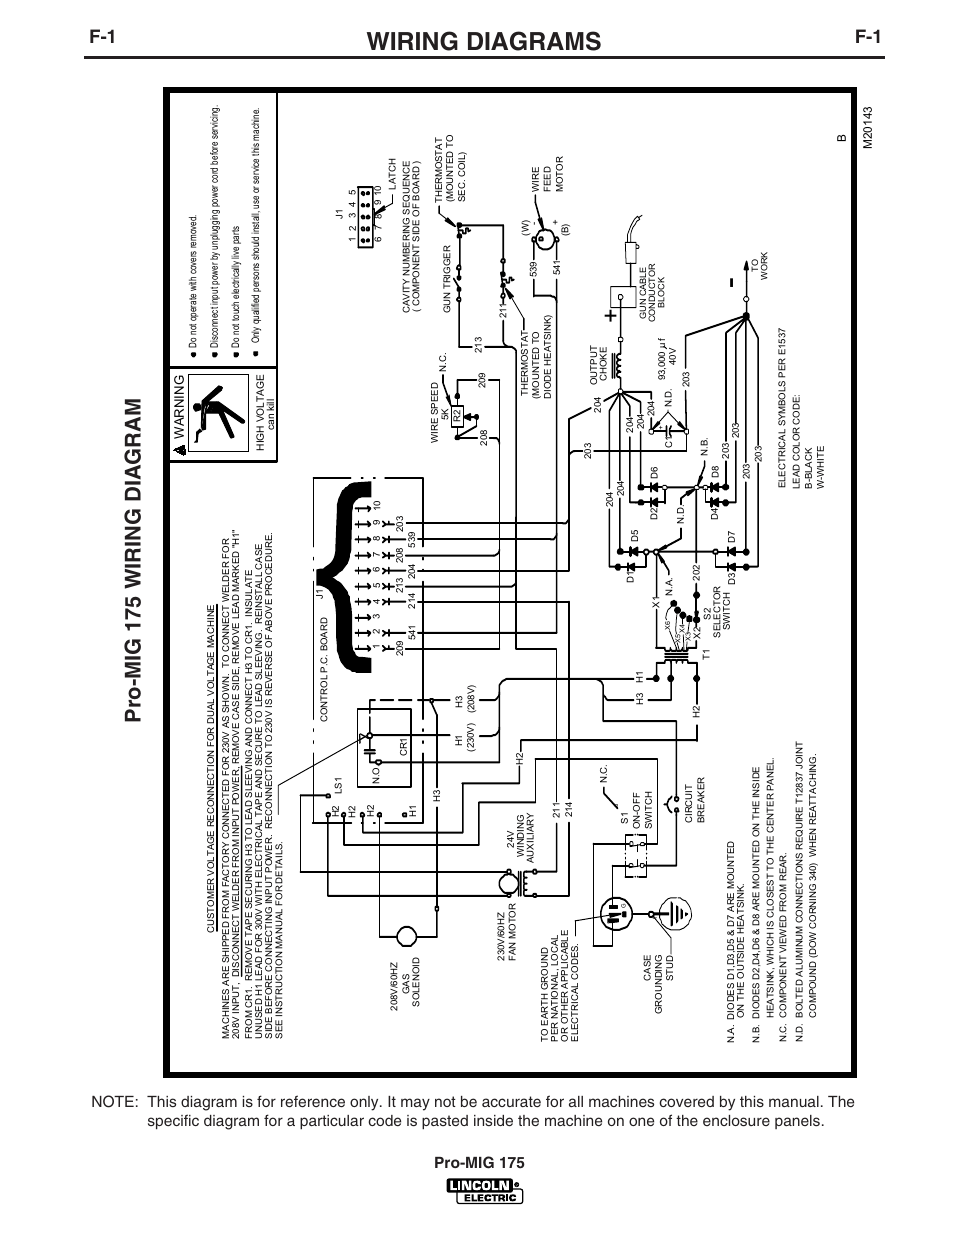 medium resolution of wire feed motor diagram wiring diagram structure mig welder diagram migmate wire feed problem